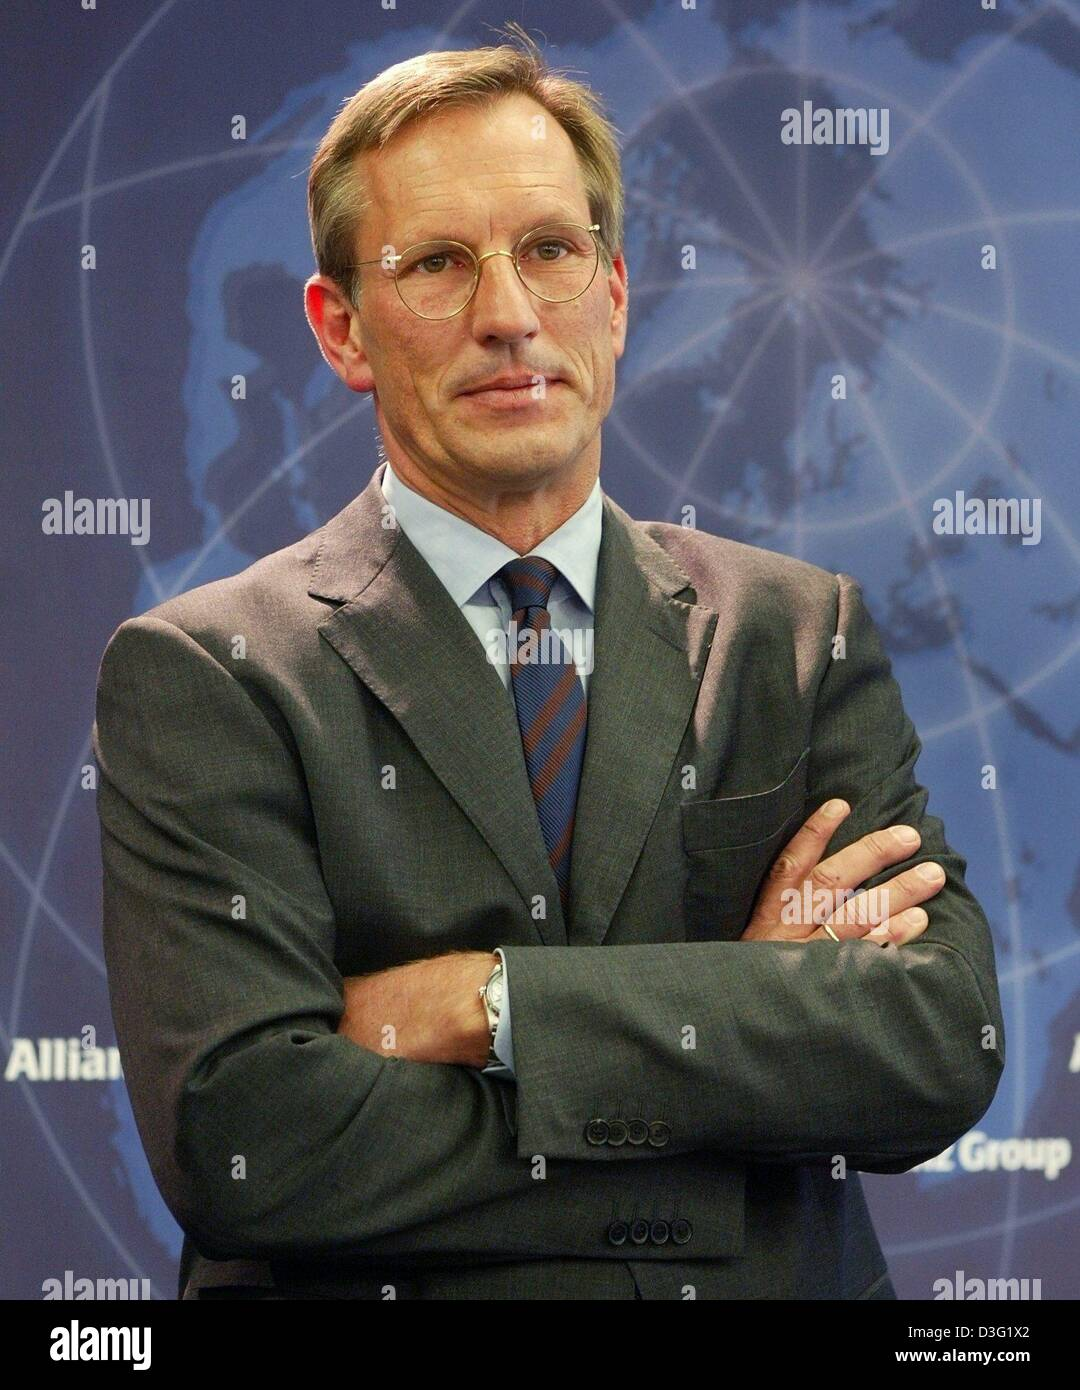 (dpa) - Michael Diekmann, new CEO of the Allianz AG, the financial services and insurance provider, looks serious with folded arms during a press conference in Munich, Germany, 20 March 2003. Diekmann continues the company policy of providing integrated financial services by holding on to the lossy Dresdner Bank. The Allianz AG wants to raise new capital in billions of Euro after h Stock Photo